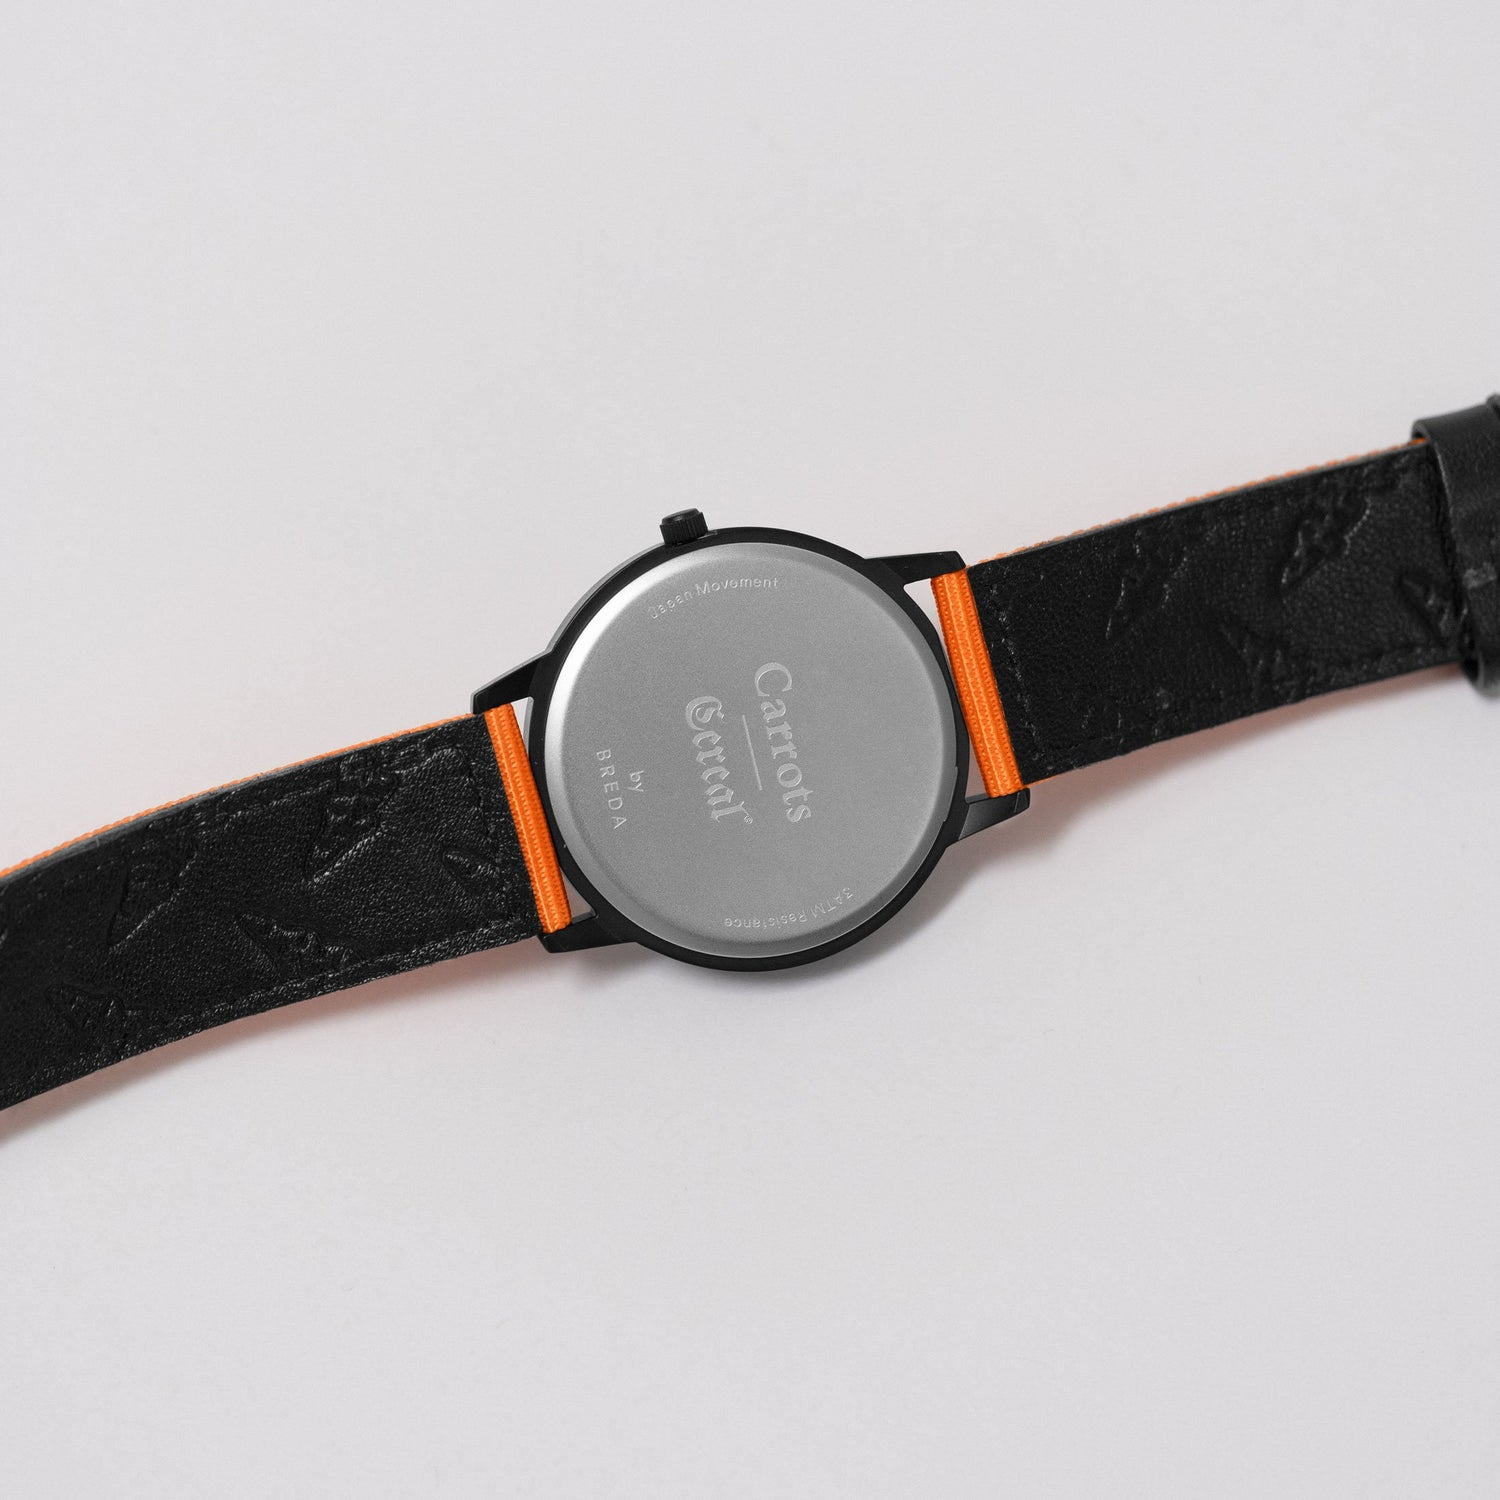 breda-cereal-carrots-valor-1707ct-black-orange-watch-studio-2